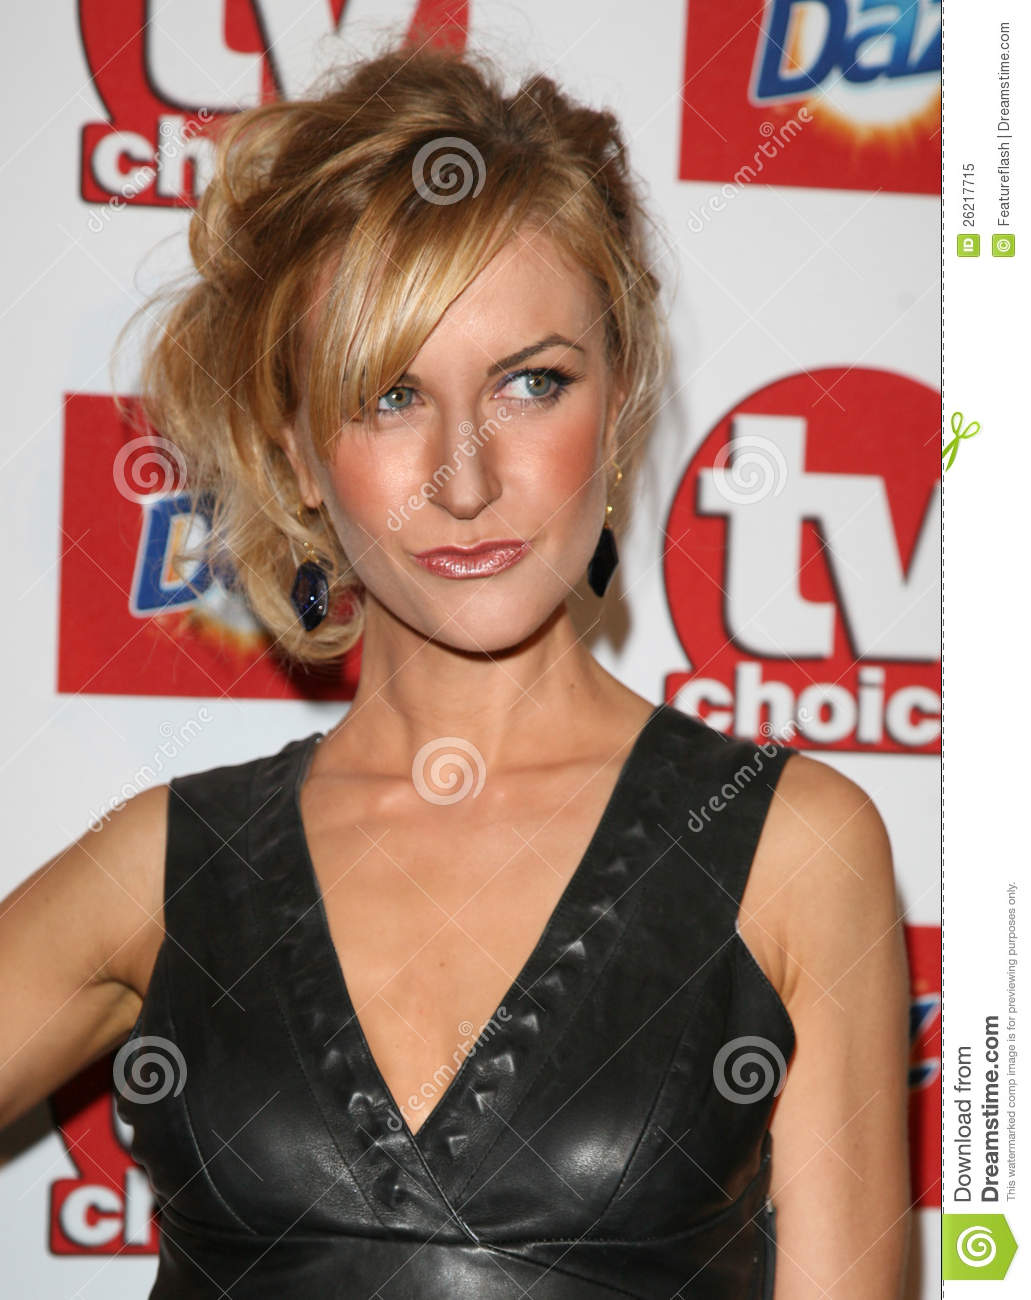 katherine kelly dresses